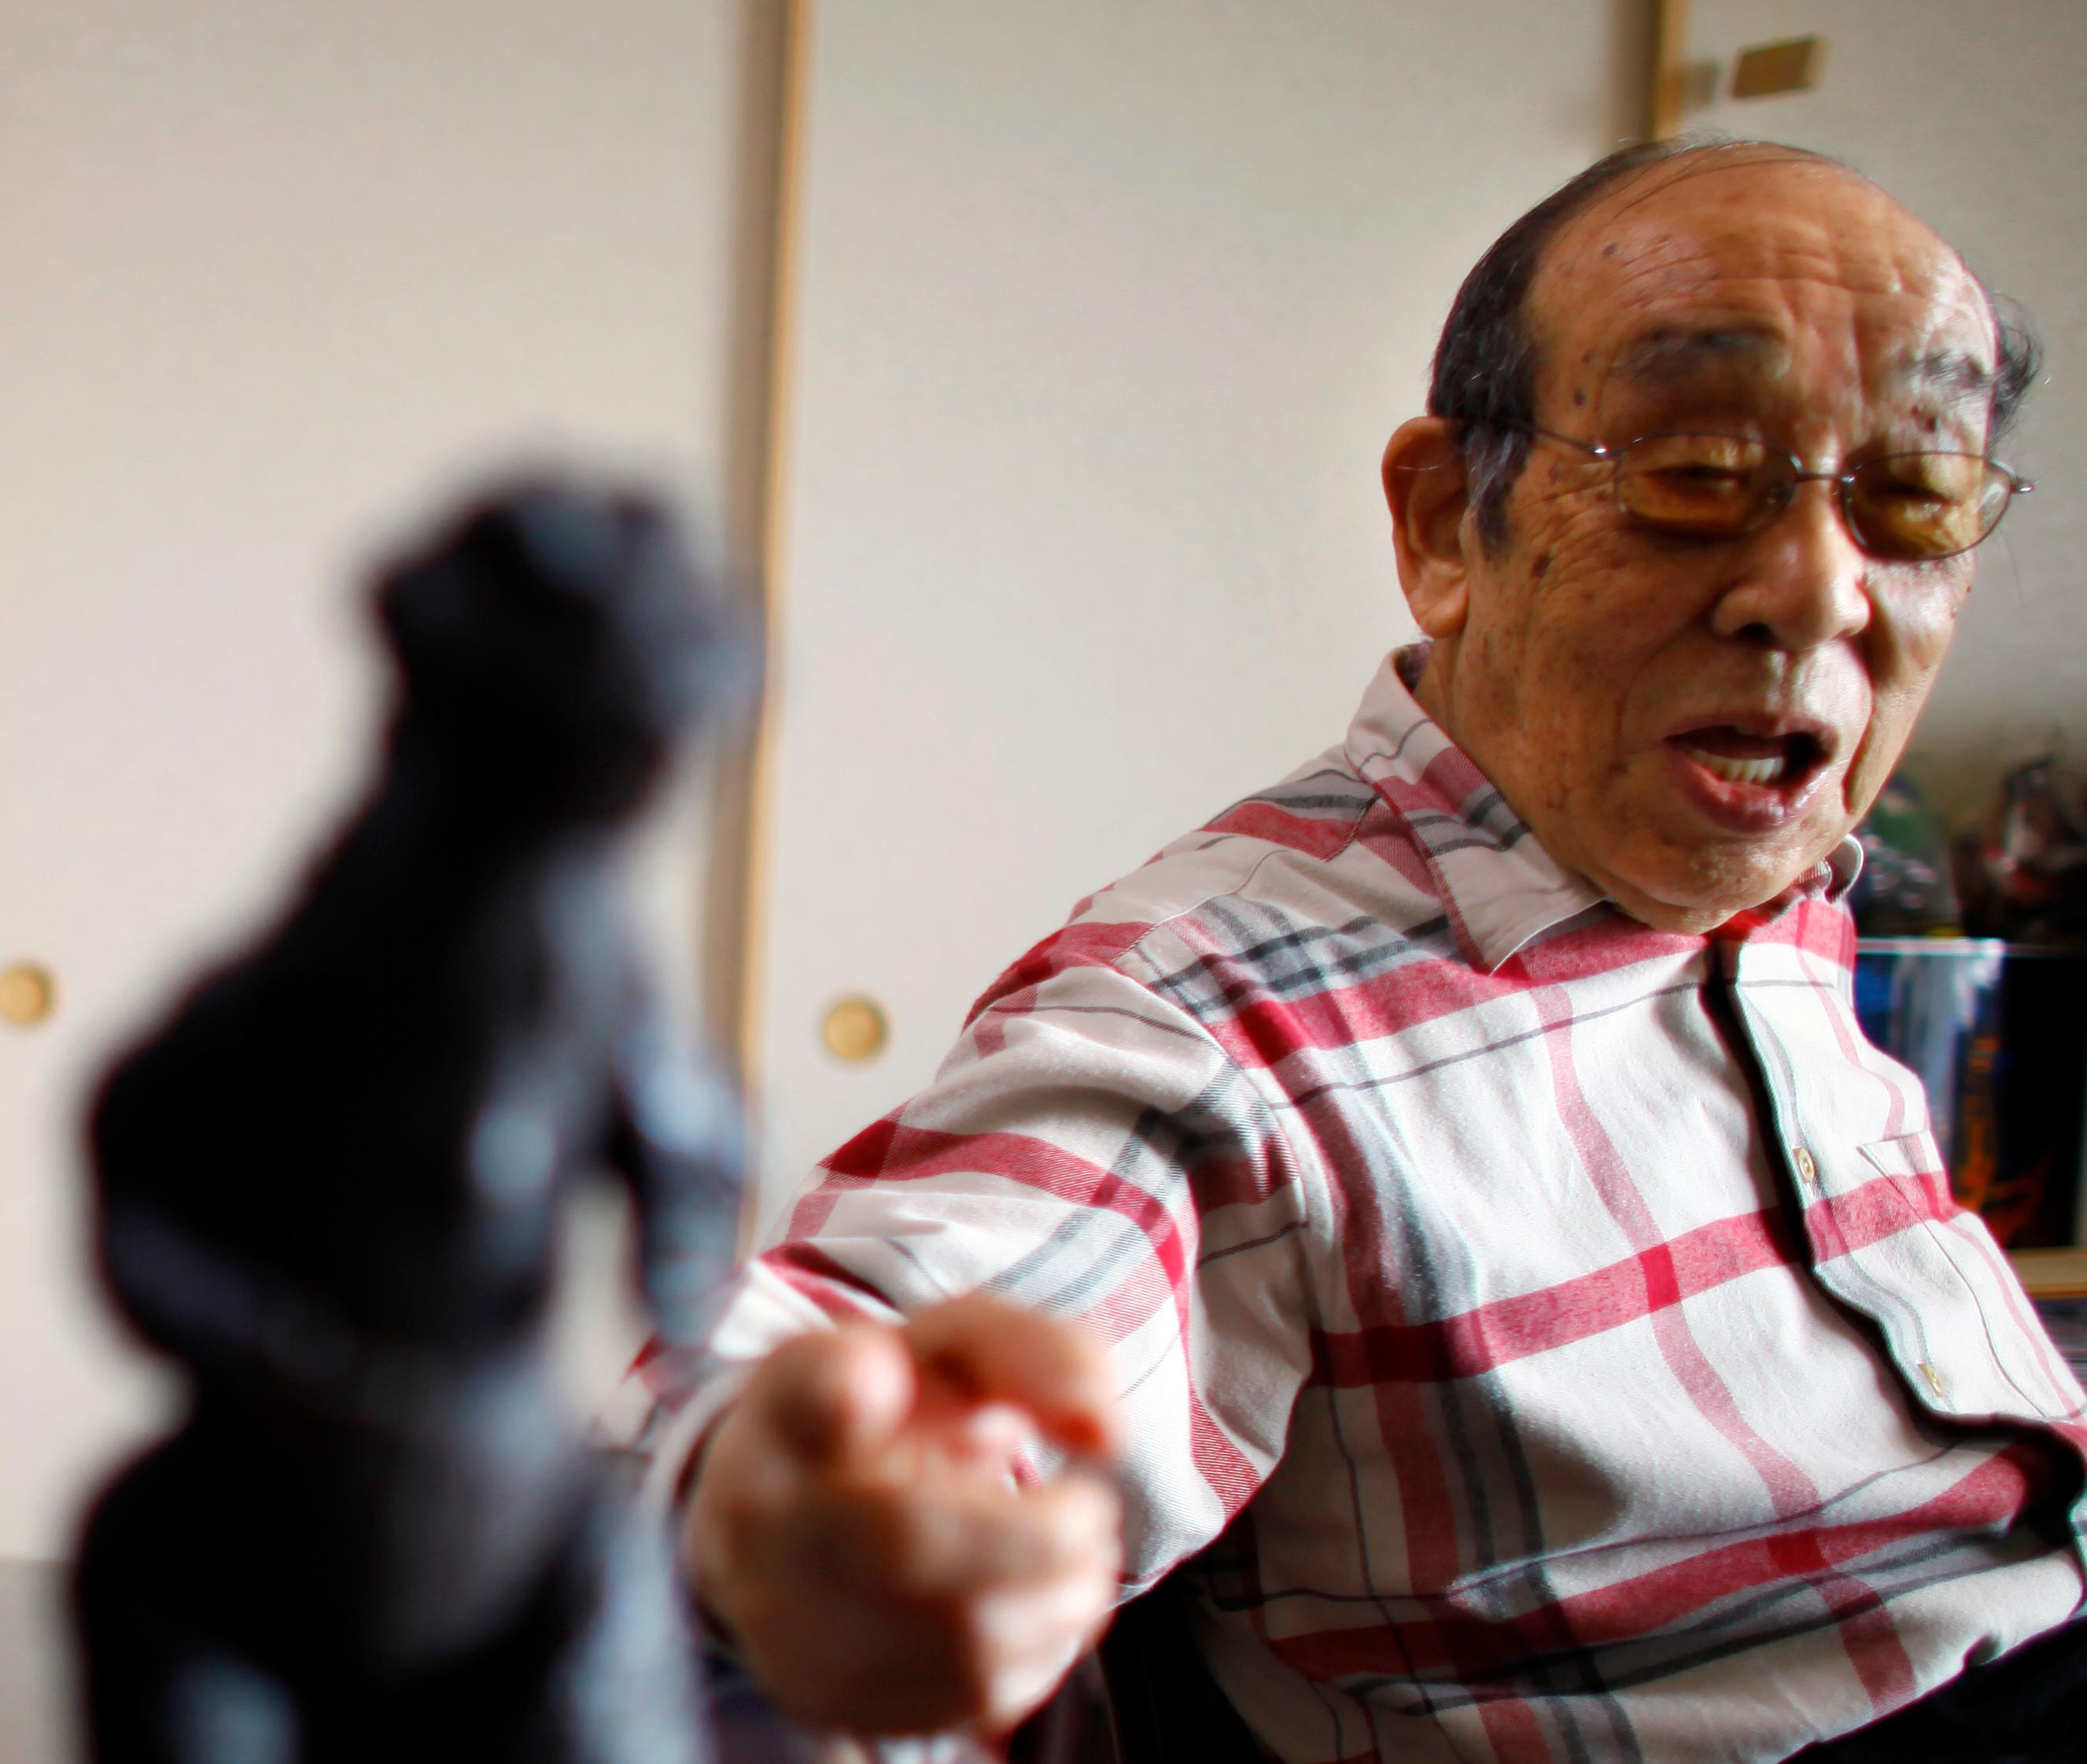 FILE - In this April 28, 2014 file photo, original Godzilla suit actor Haruo Nakajima, who has played his role as the monster, points a figure of the monster he made for the movie, as he speaks during an interview at his home in Sagamihara, near Tokyo. Nakajima, the actor who stomped in a rubber suit to portray the original 1954 Godzilla, has died on Monday, Aug. 7, 2017. He was 88. (AP Photo/Junji Kurokawa, File)